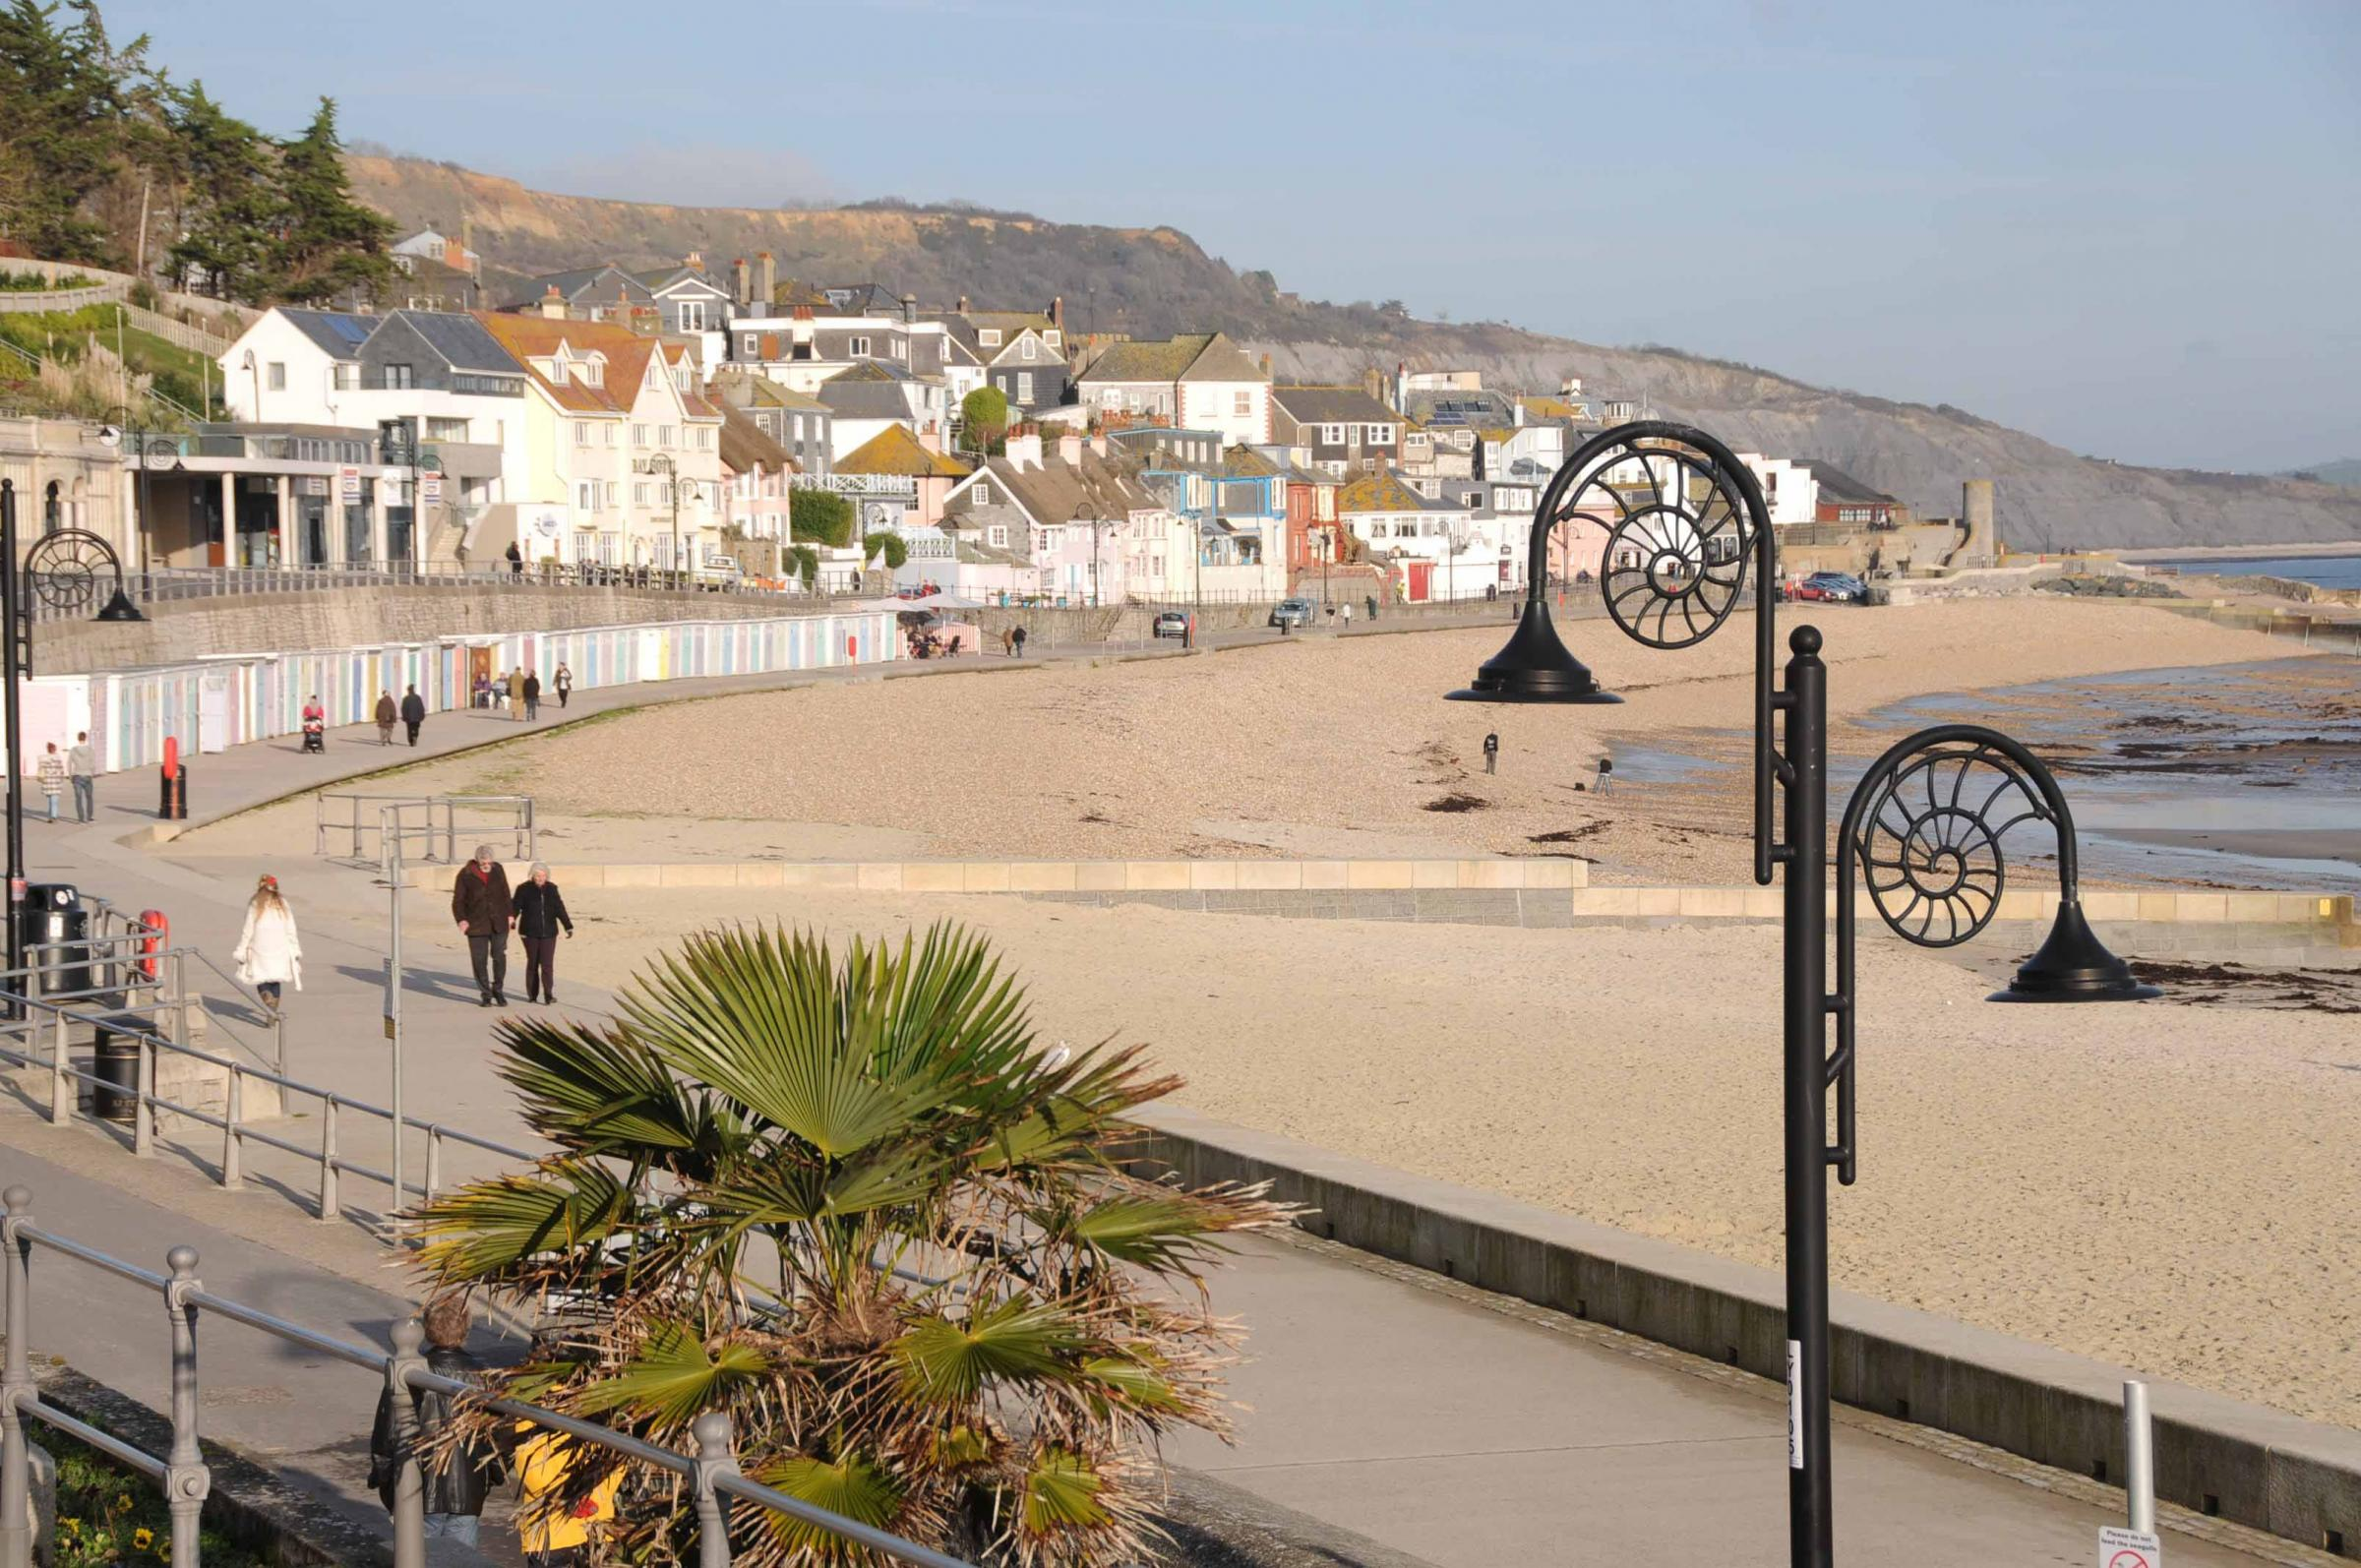 Boy rushed to hospital after stepping on needle on Lyme Regis beach